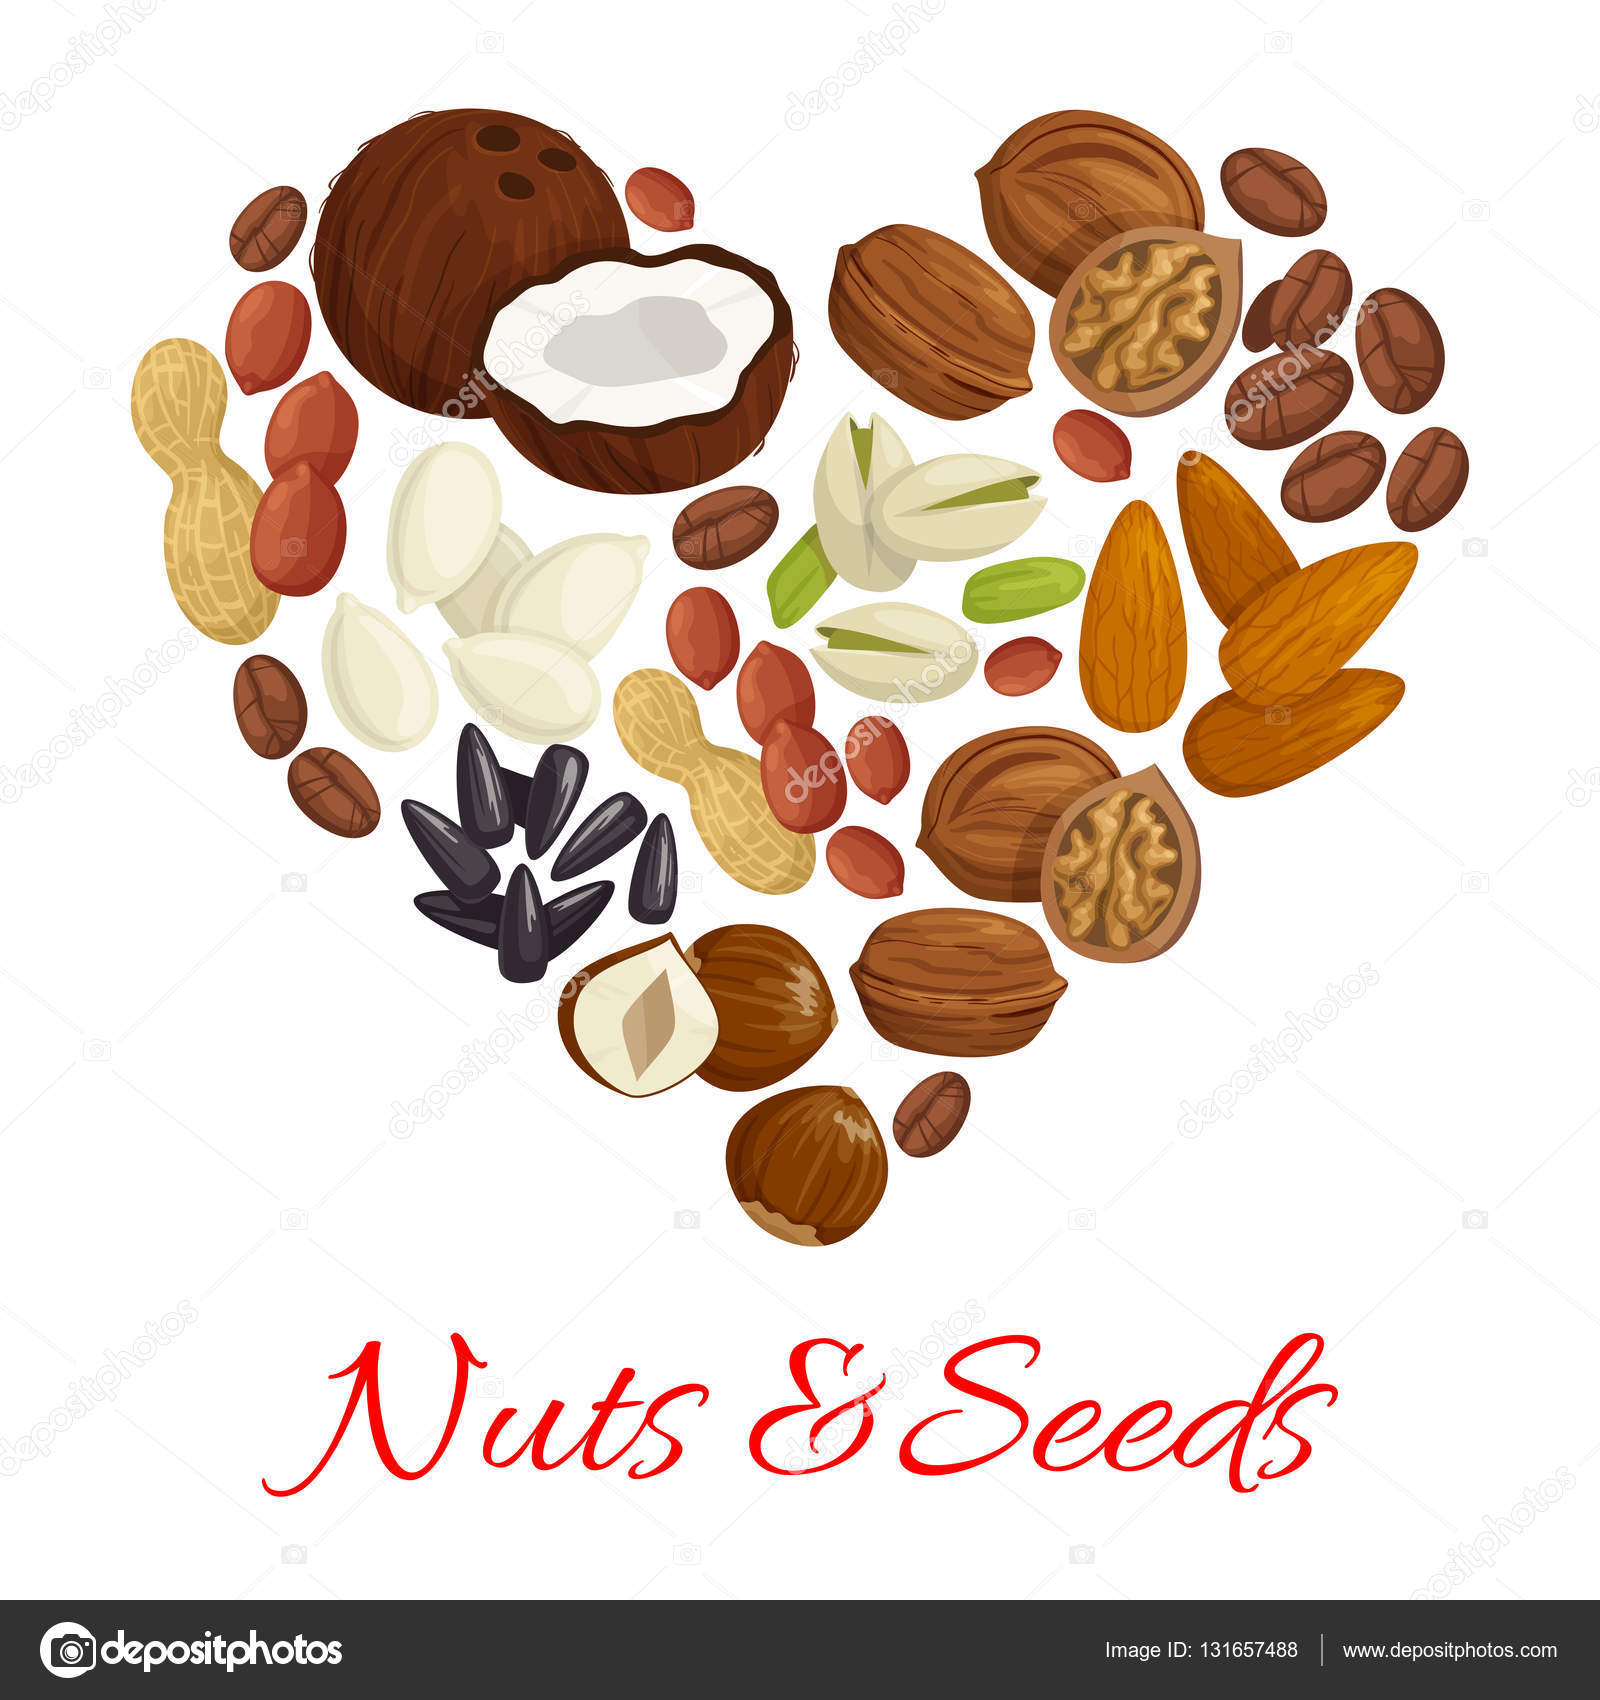 Almond clipart nut seed Of seed nut Vector for